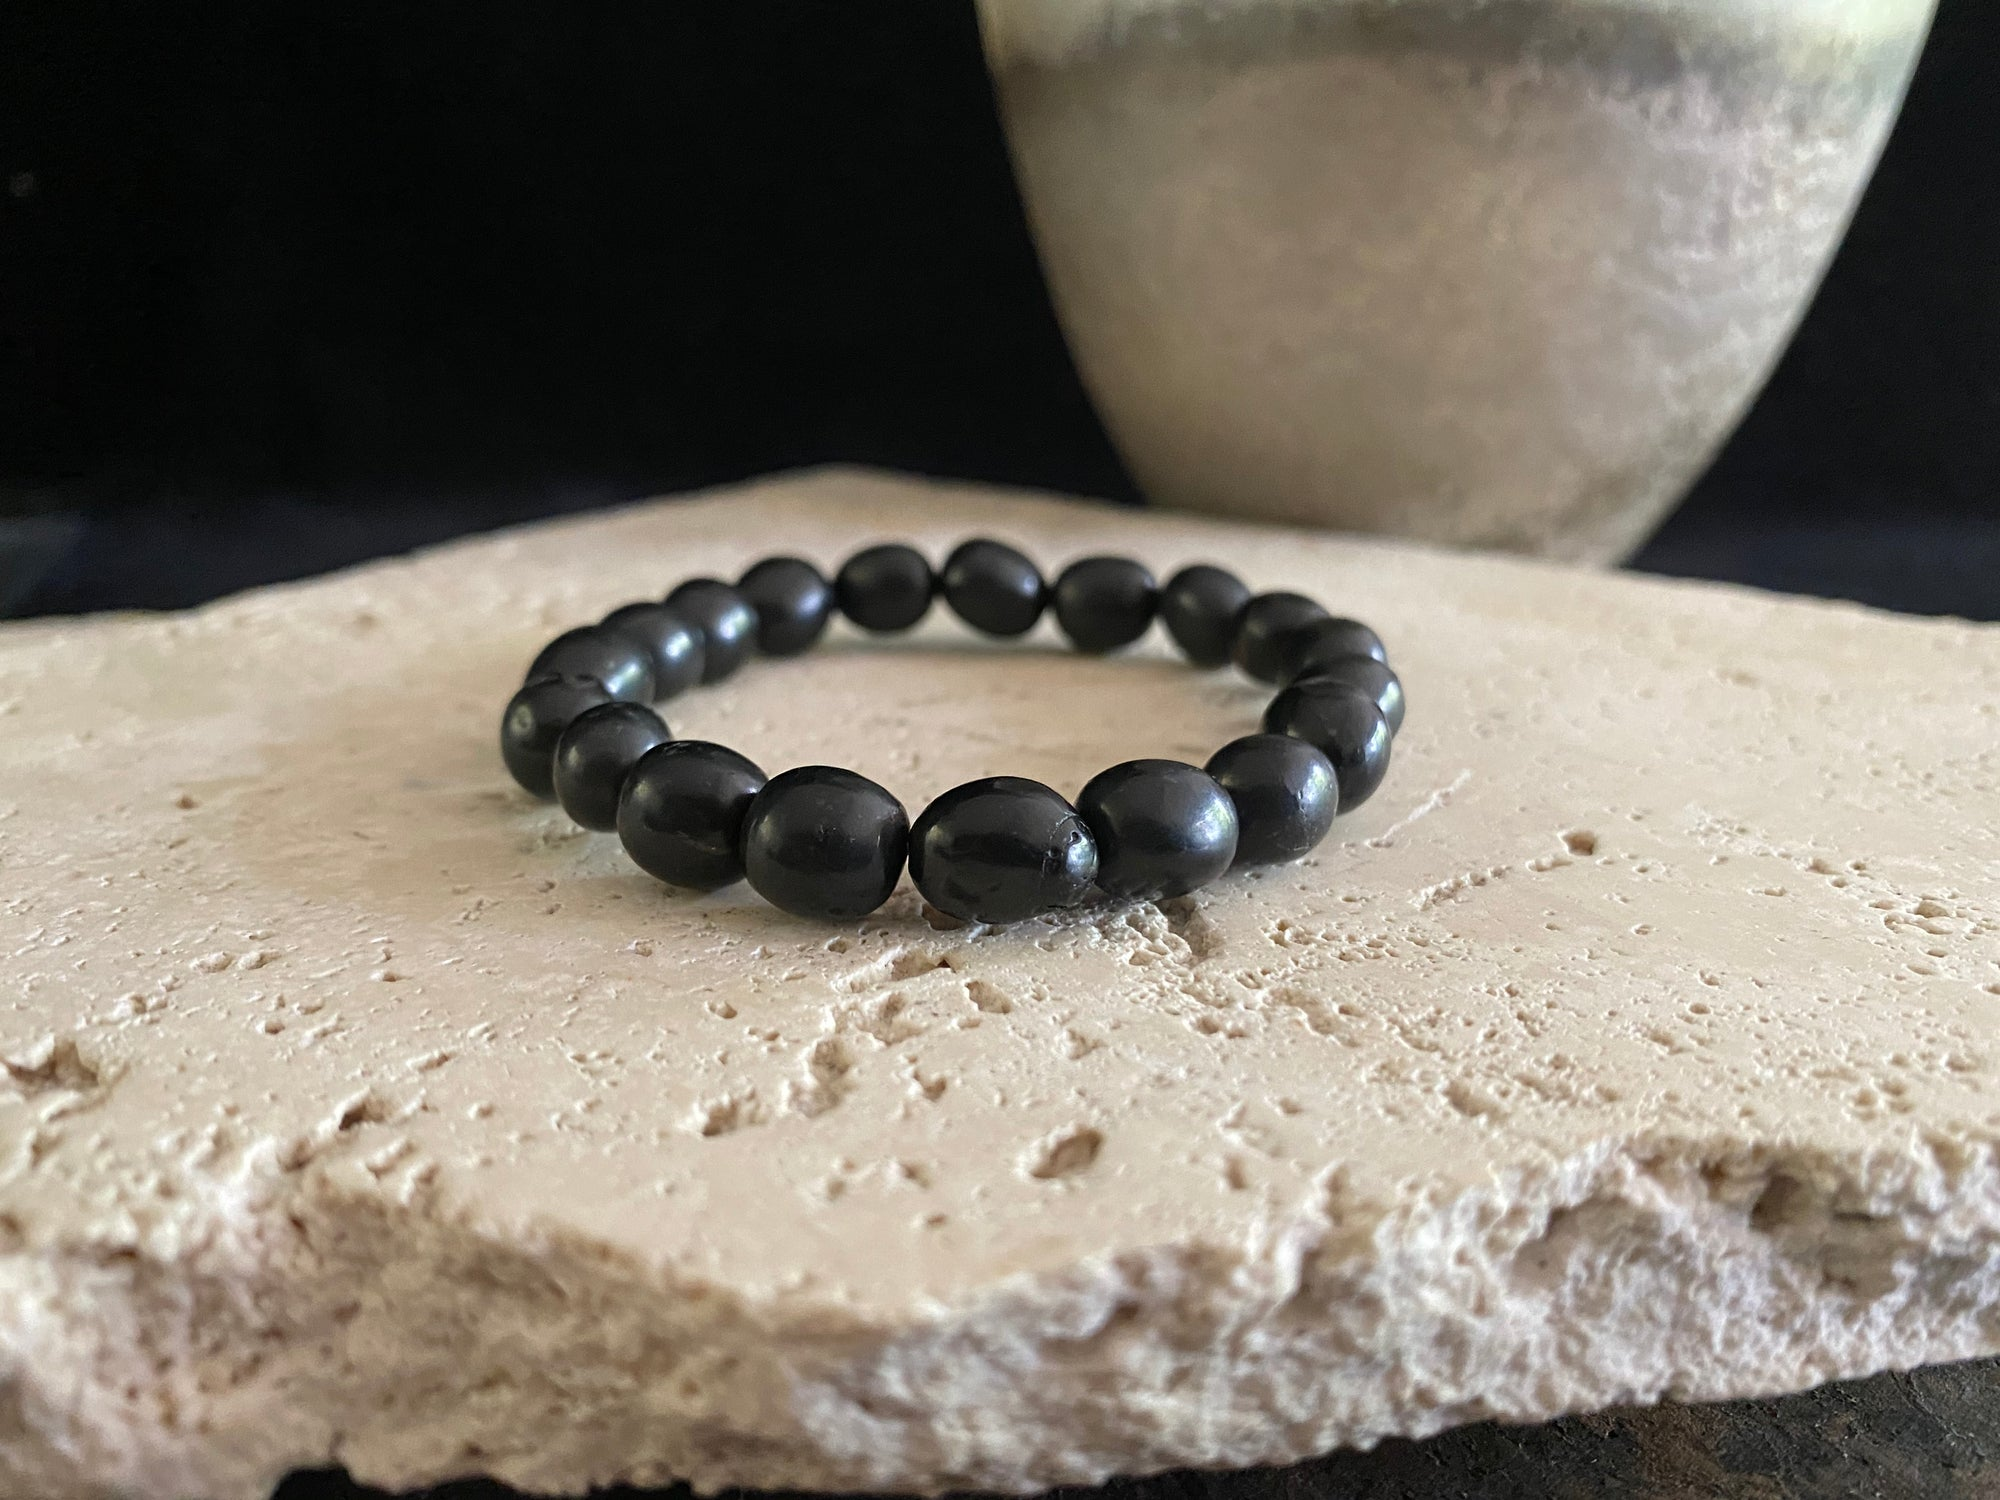 Shungite bracelet of elasticised cord for men or women. Natural shungite, not composite